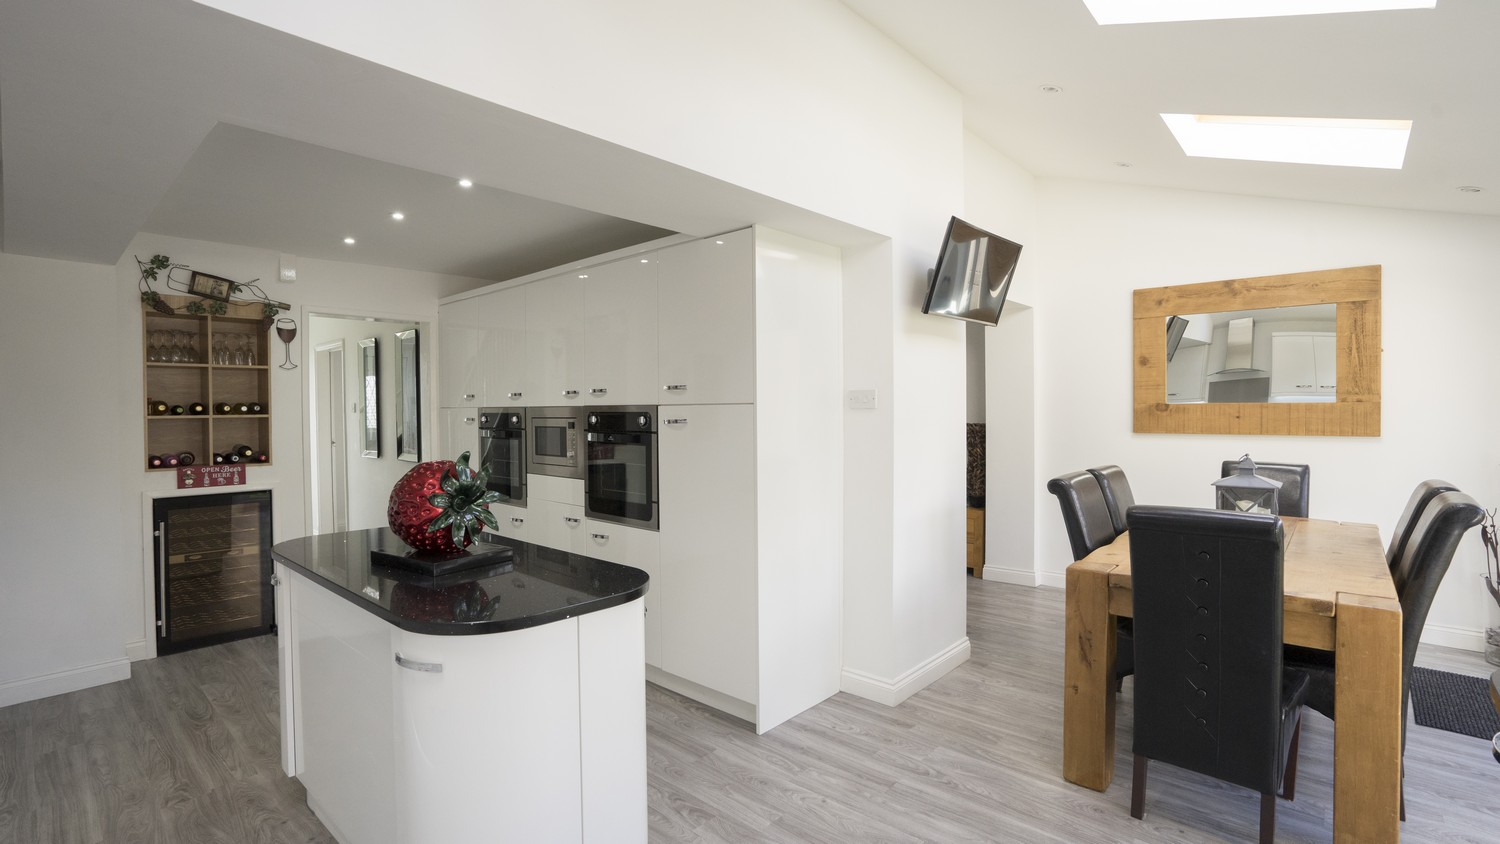 White gloss kitchen supplied with mirror black granite worktops as part of this open plan re-model.